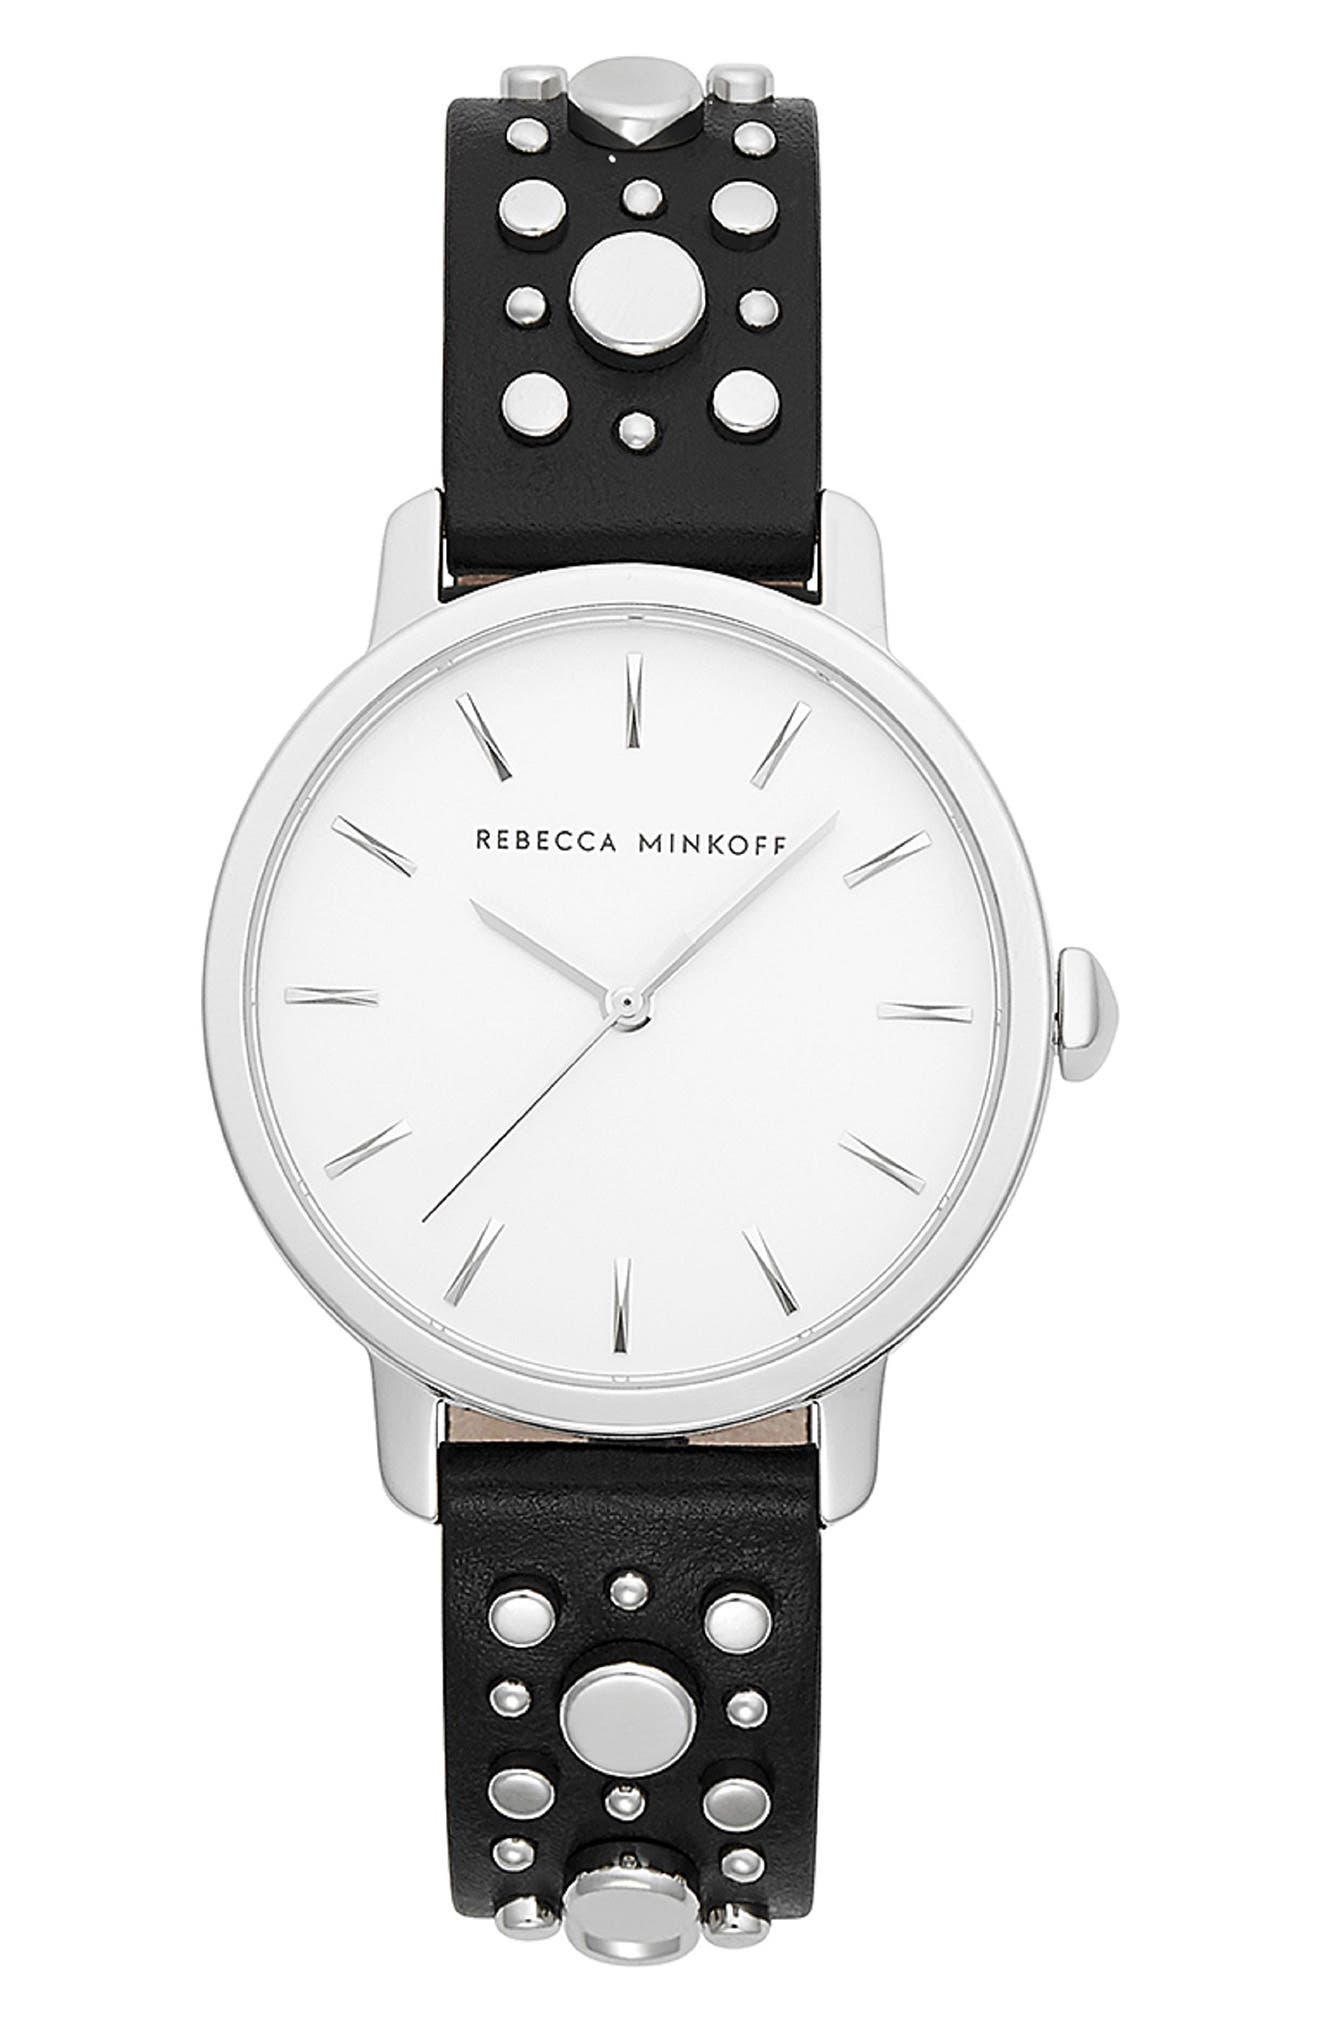 REBECCA MINKOFF BFFL Studded Leather Strap Watch, 36mm, Main, color, BLACK/ SILVER WHITE/ SILVER